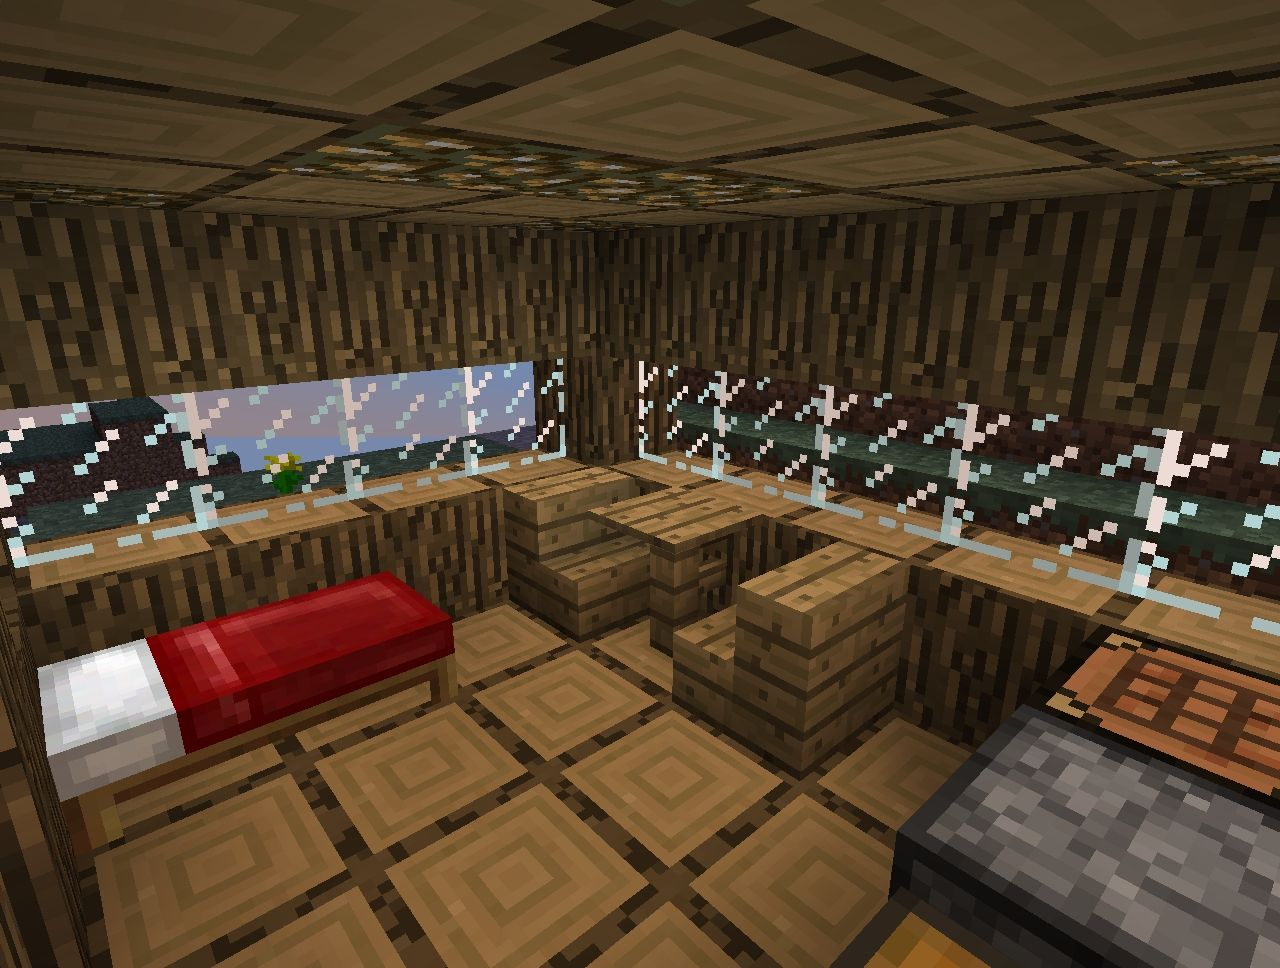 Mountain log cabin minecraft project for Log cabin project